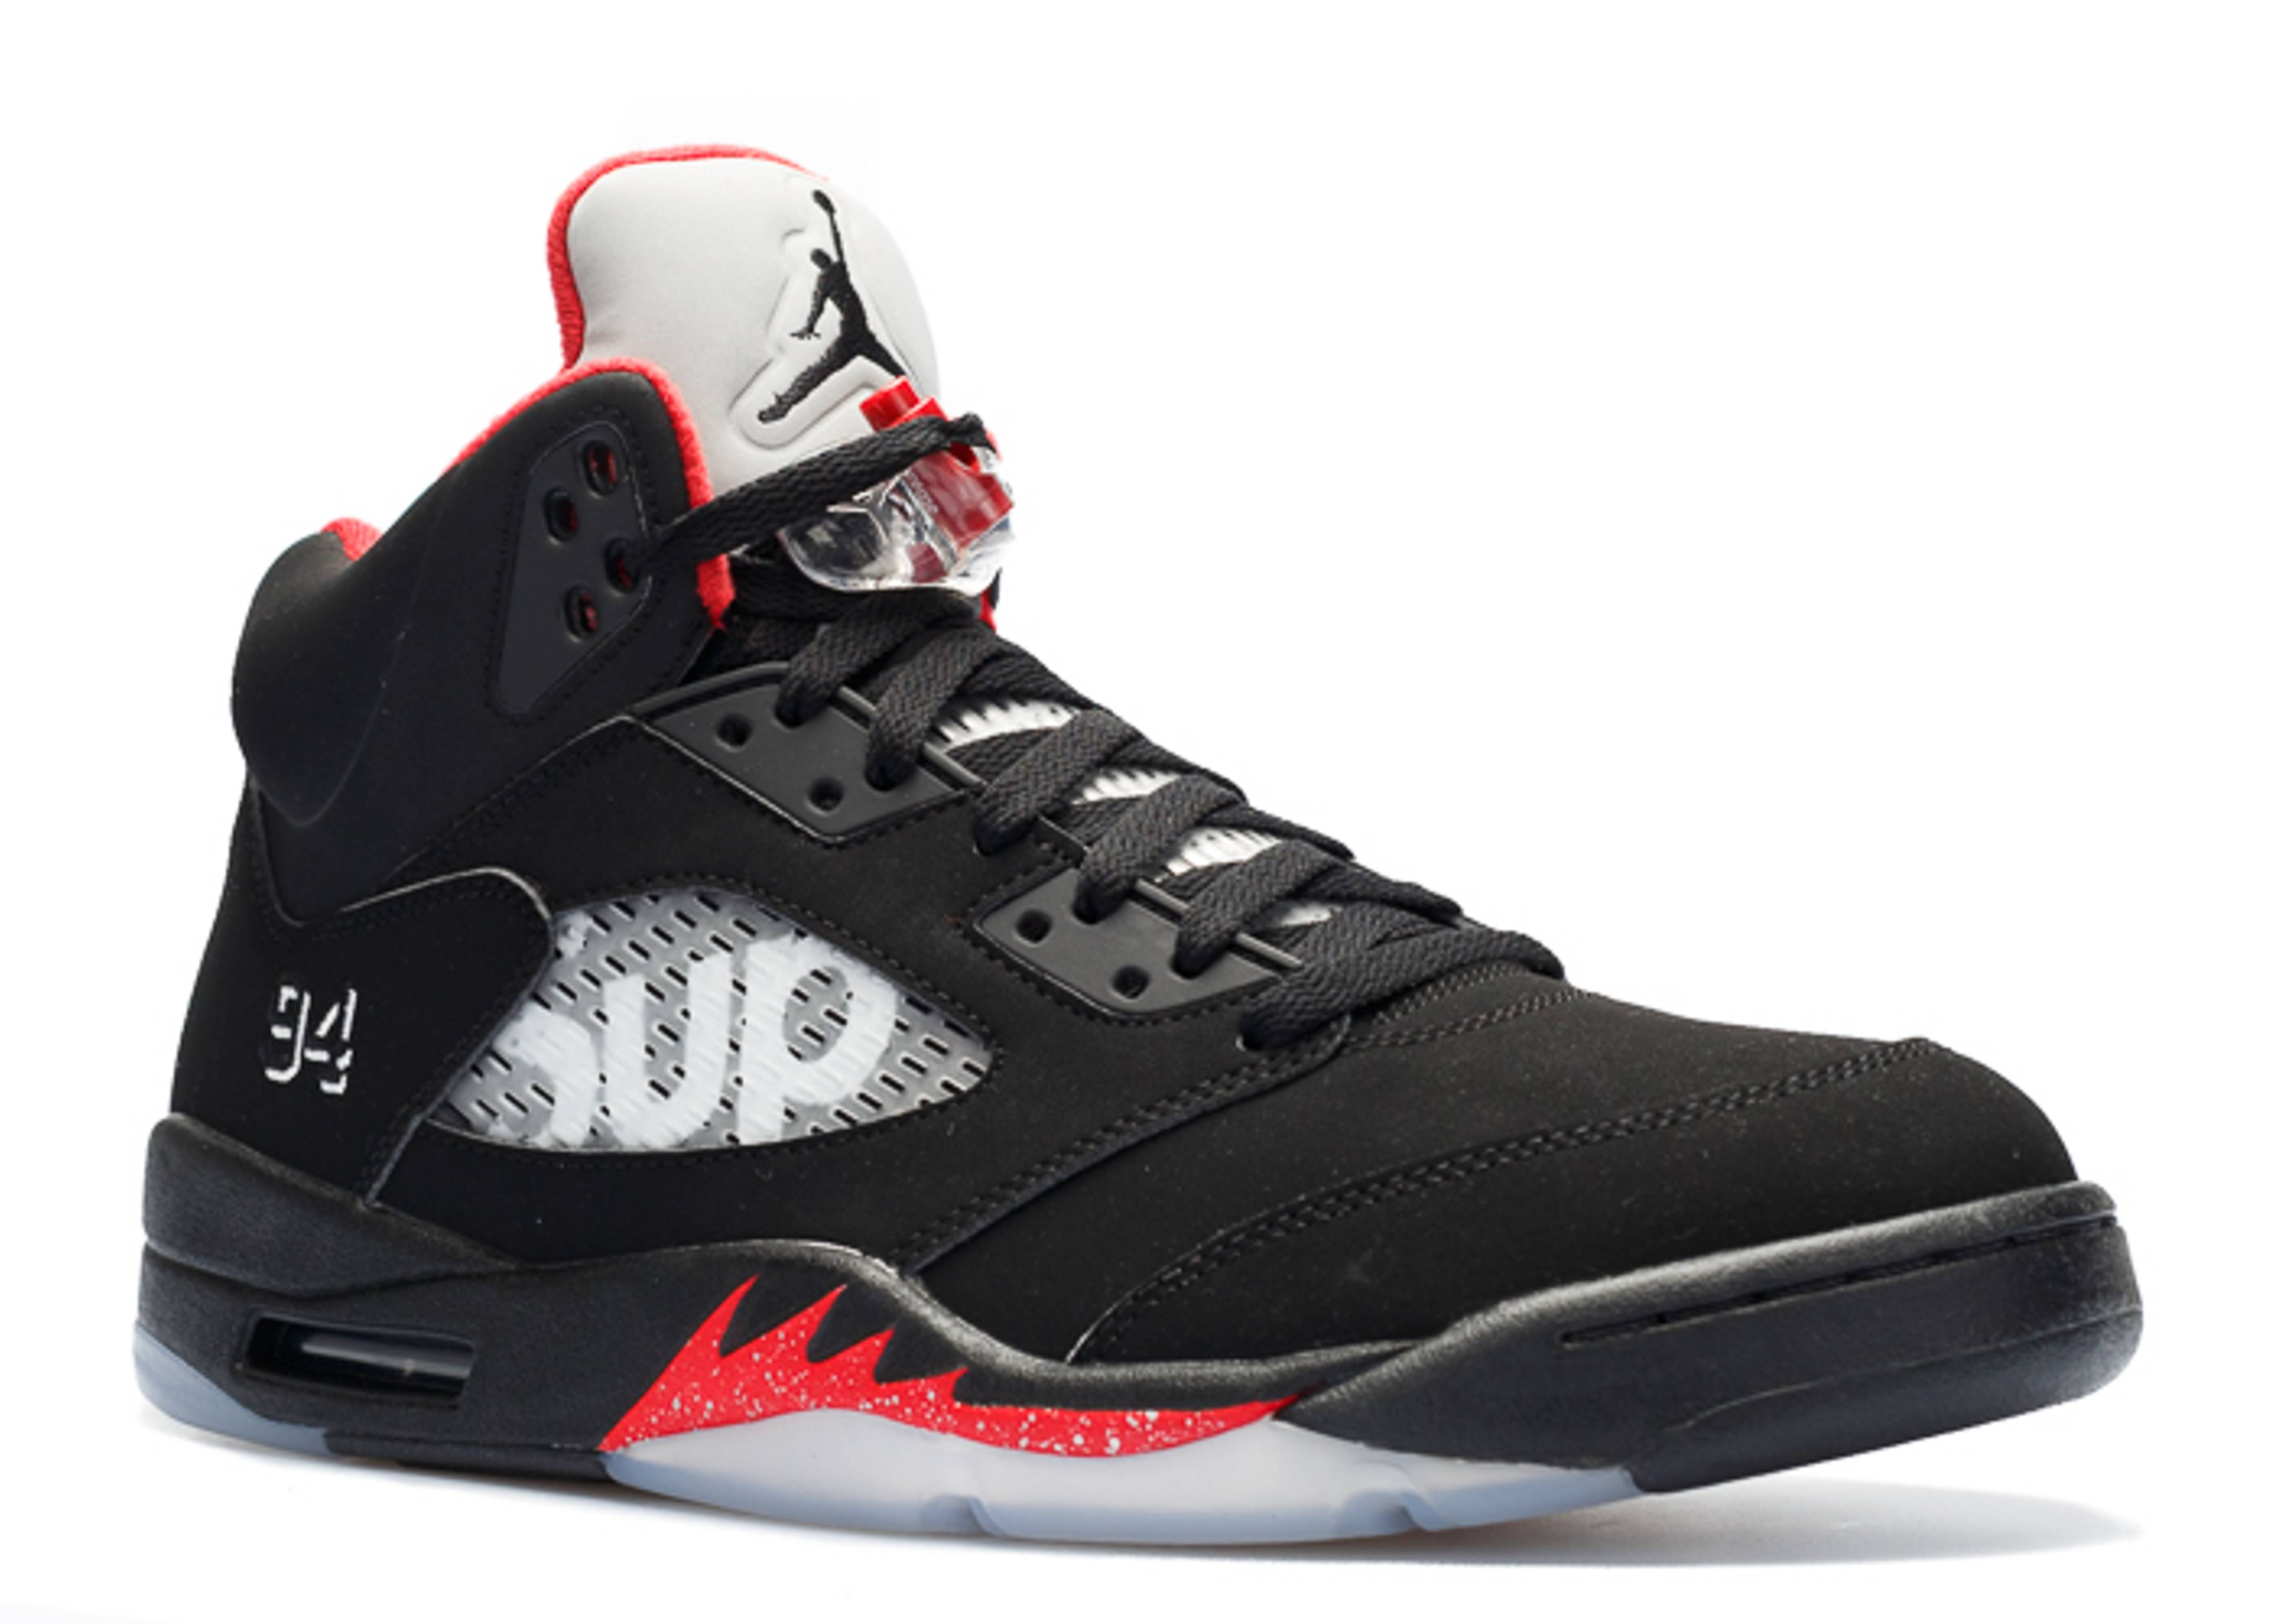 Welcome to the Flight Club! Taking inspiration from the greatest player of all time, the Jordan Flight Club '91 is an off-court shoe that offers a legendary look.